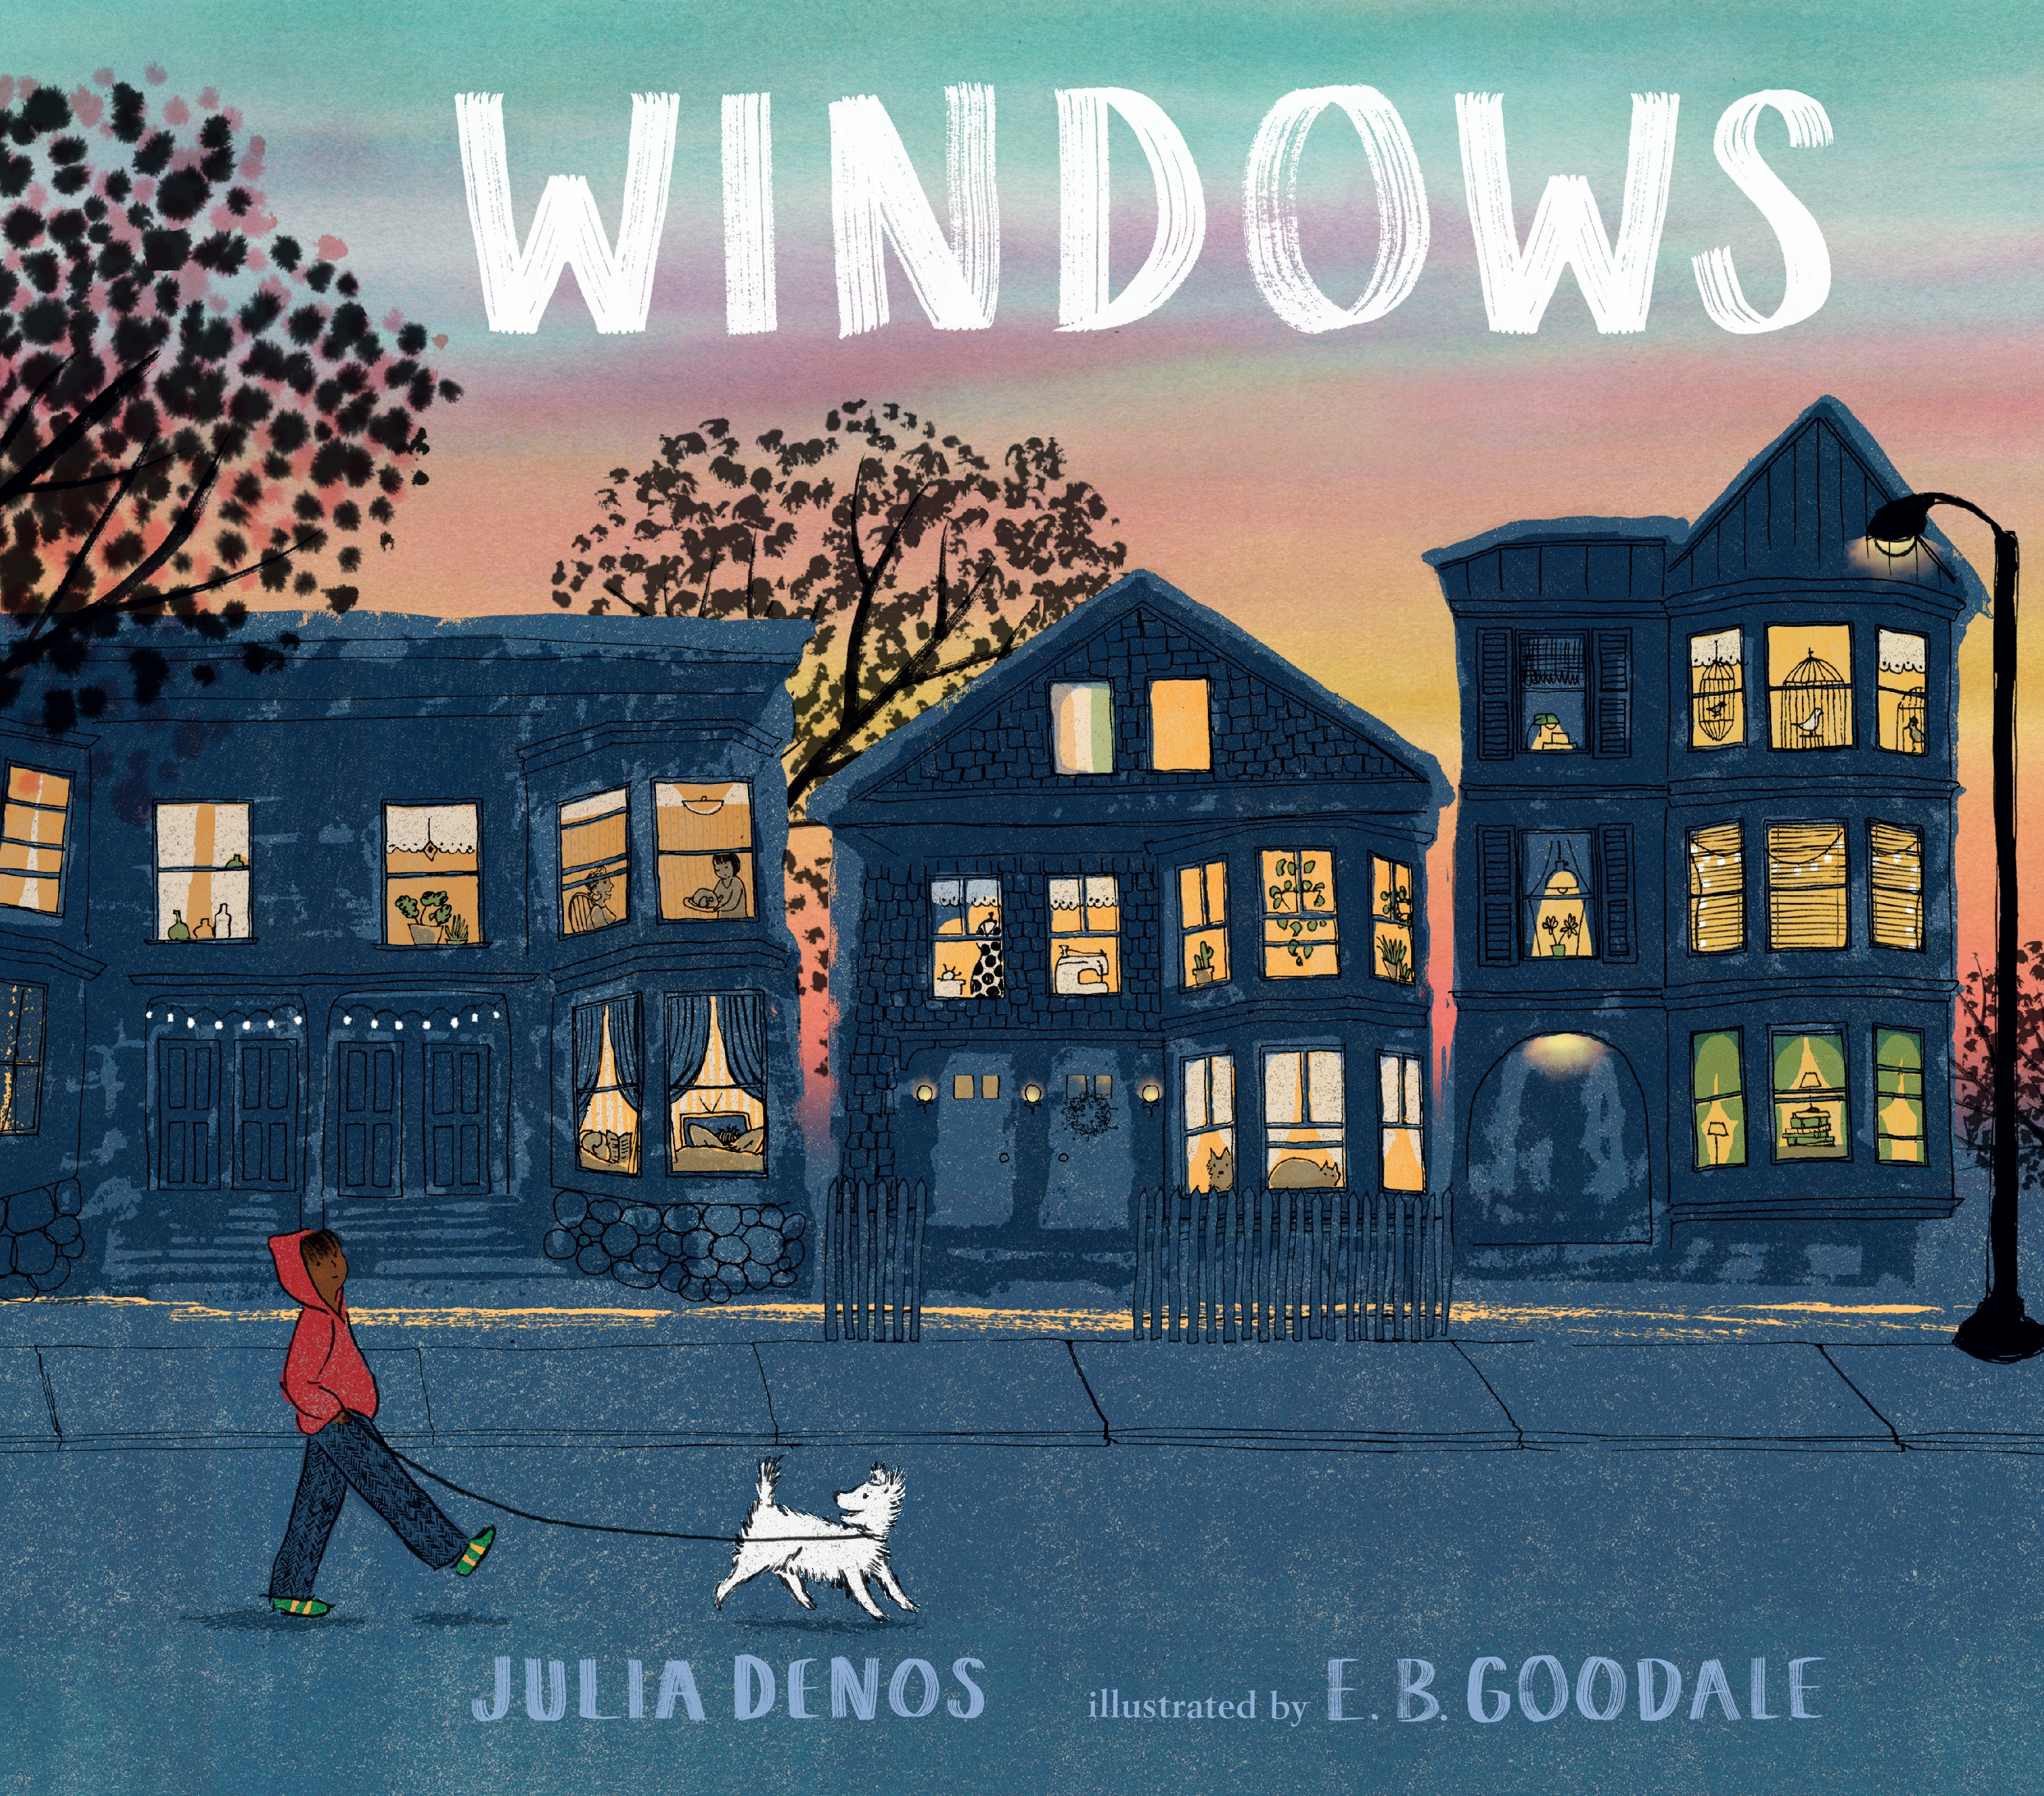 Windows by Julia Denos - Hardcover Illustrated